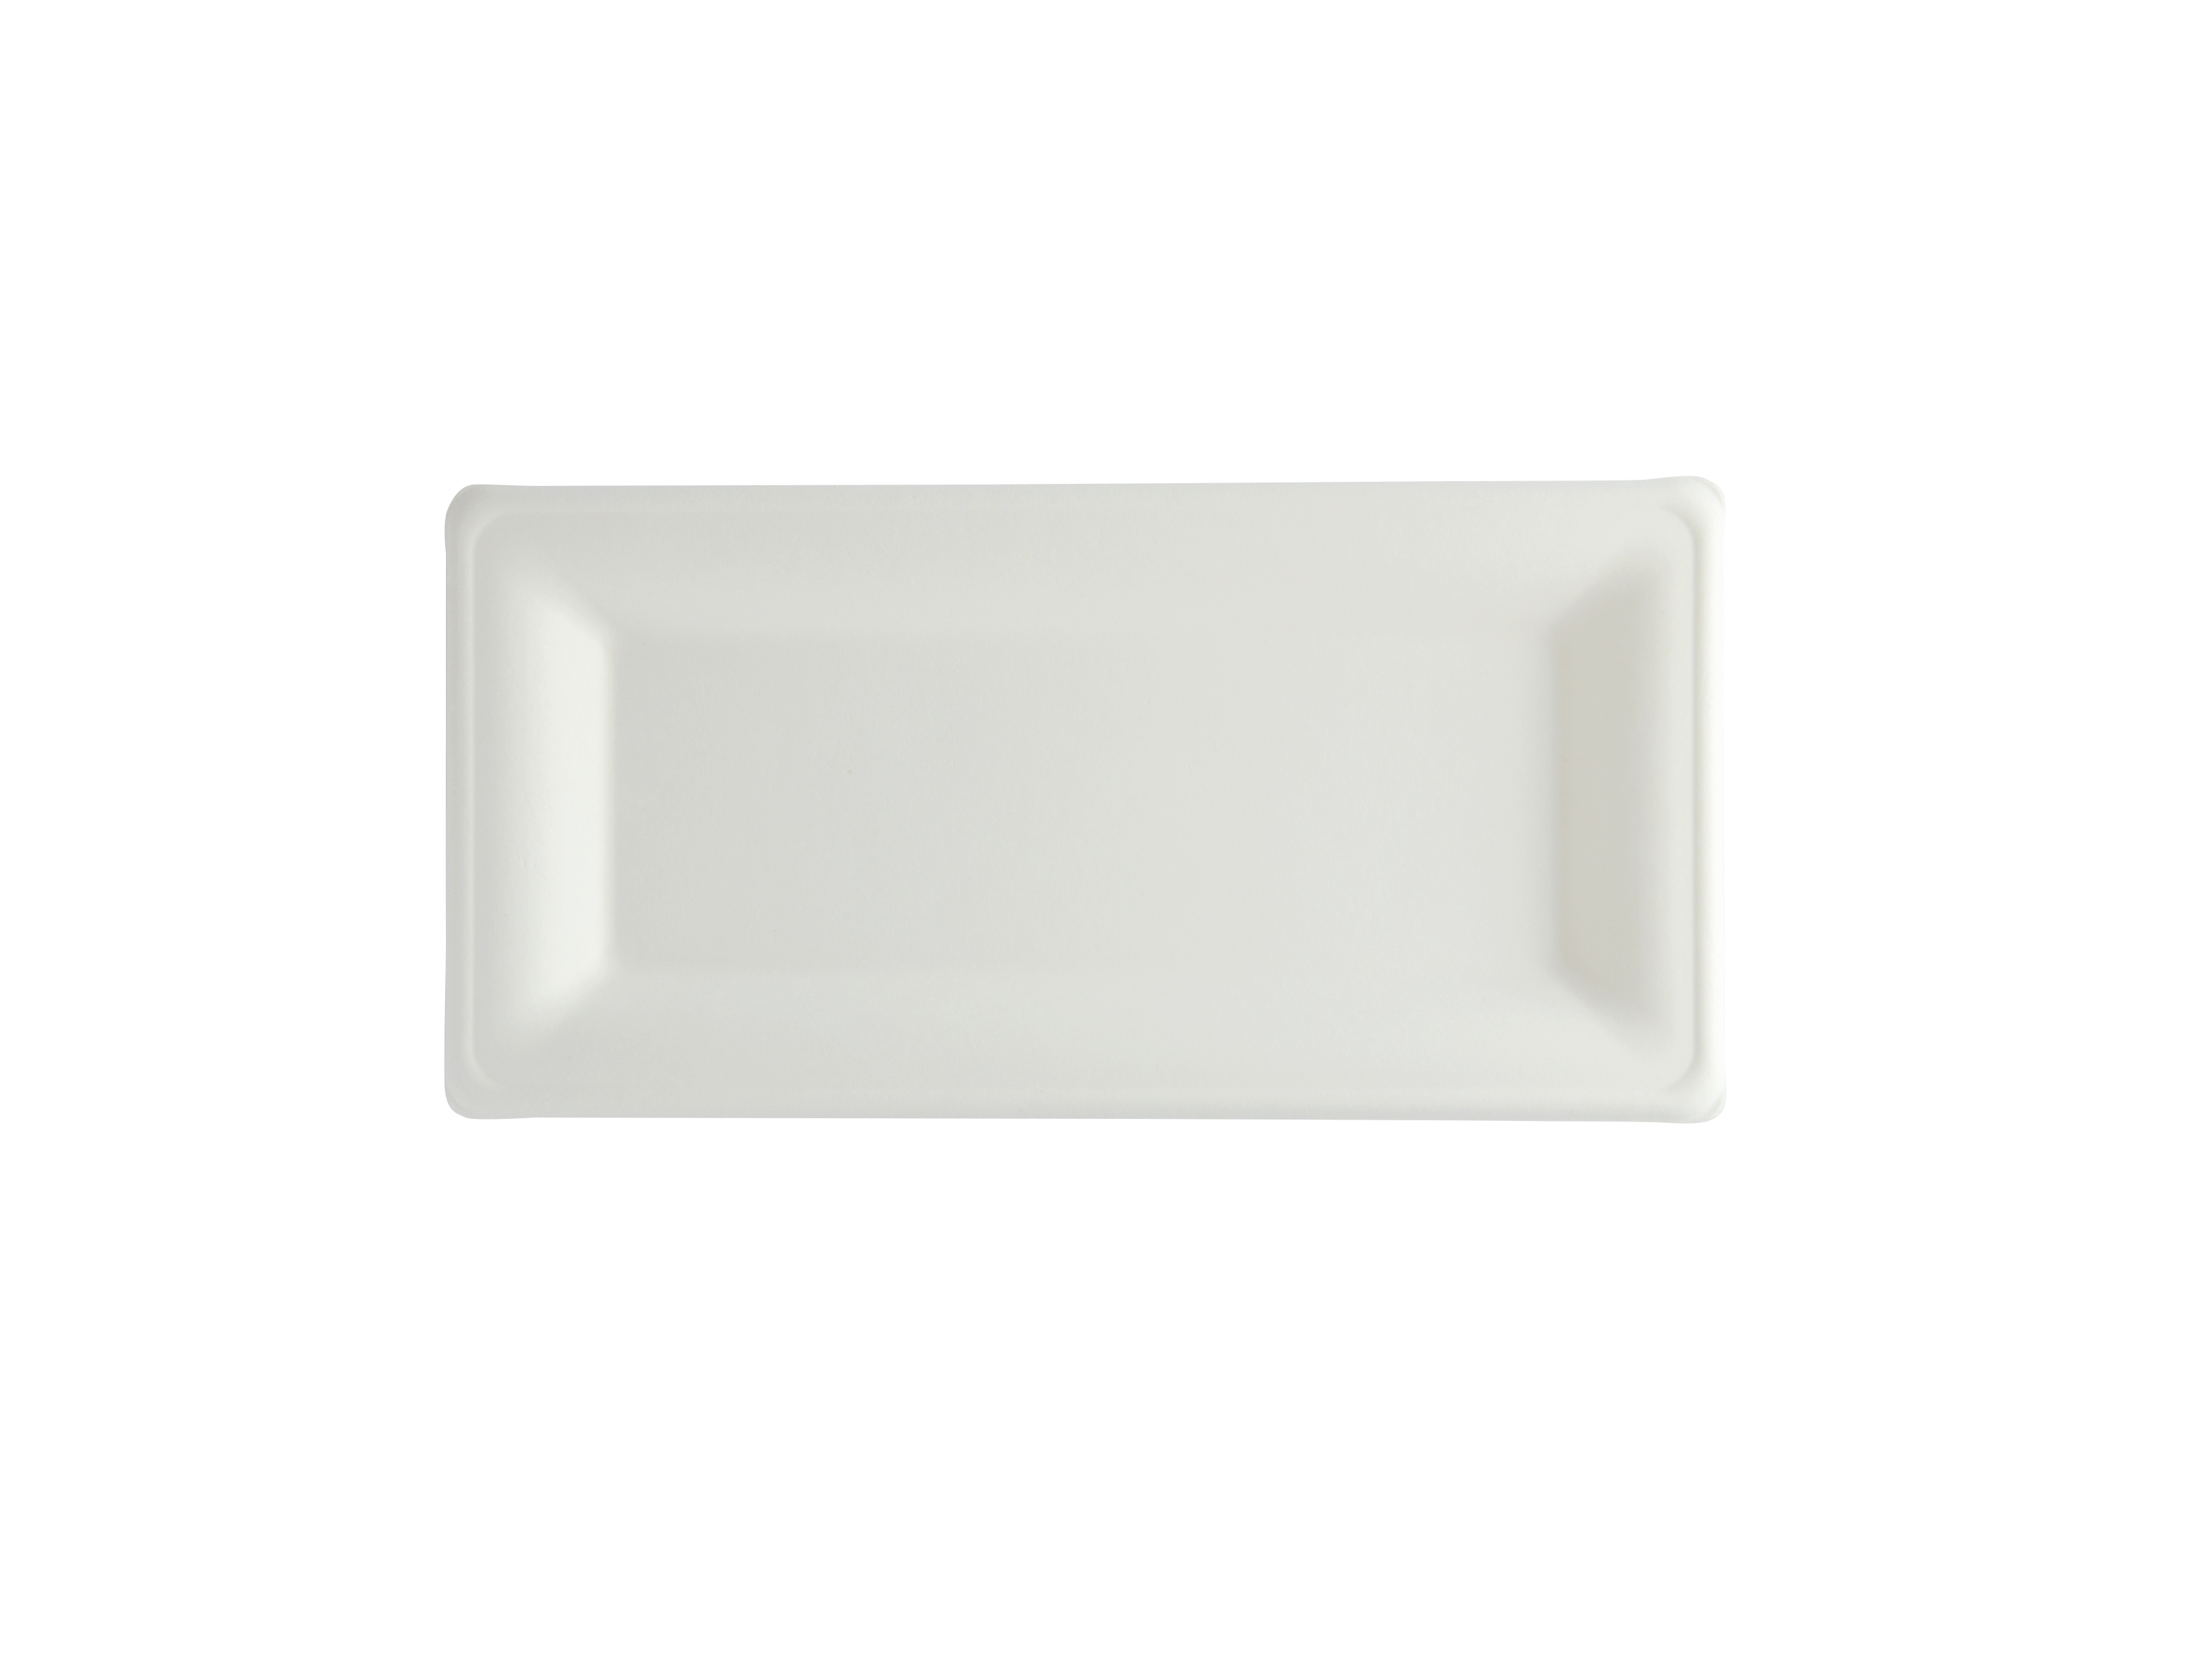 10 x 5in rectangular bagasse plate - white - Vegware